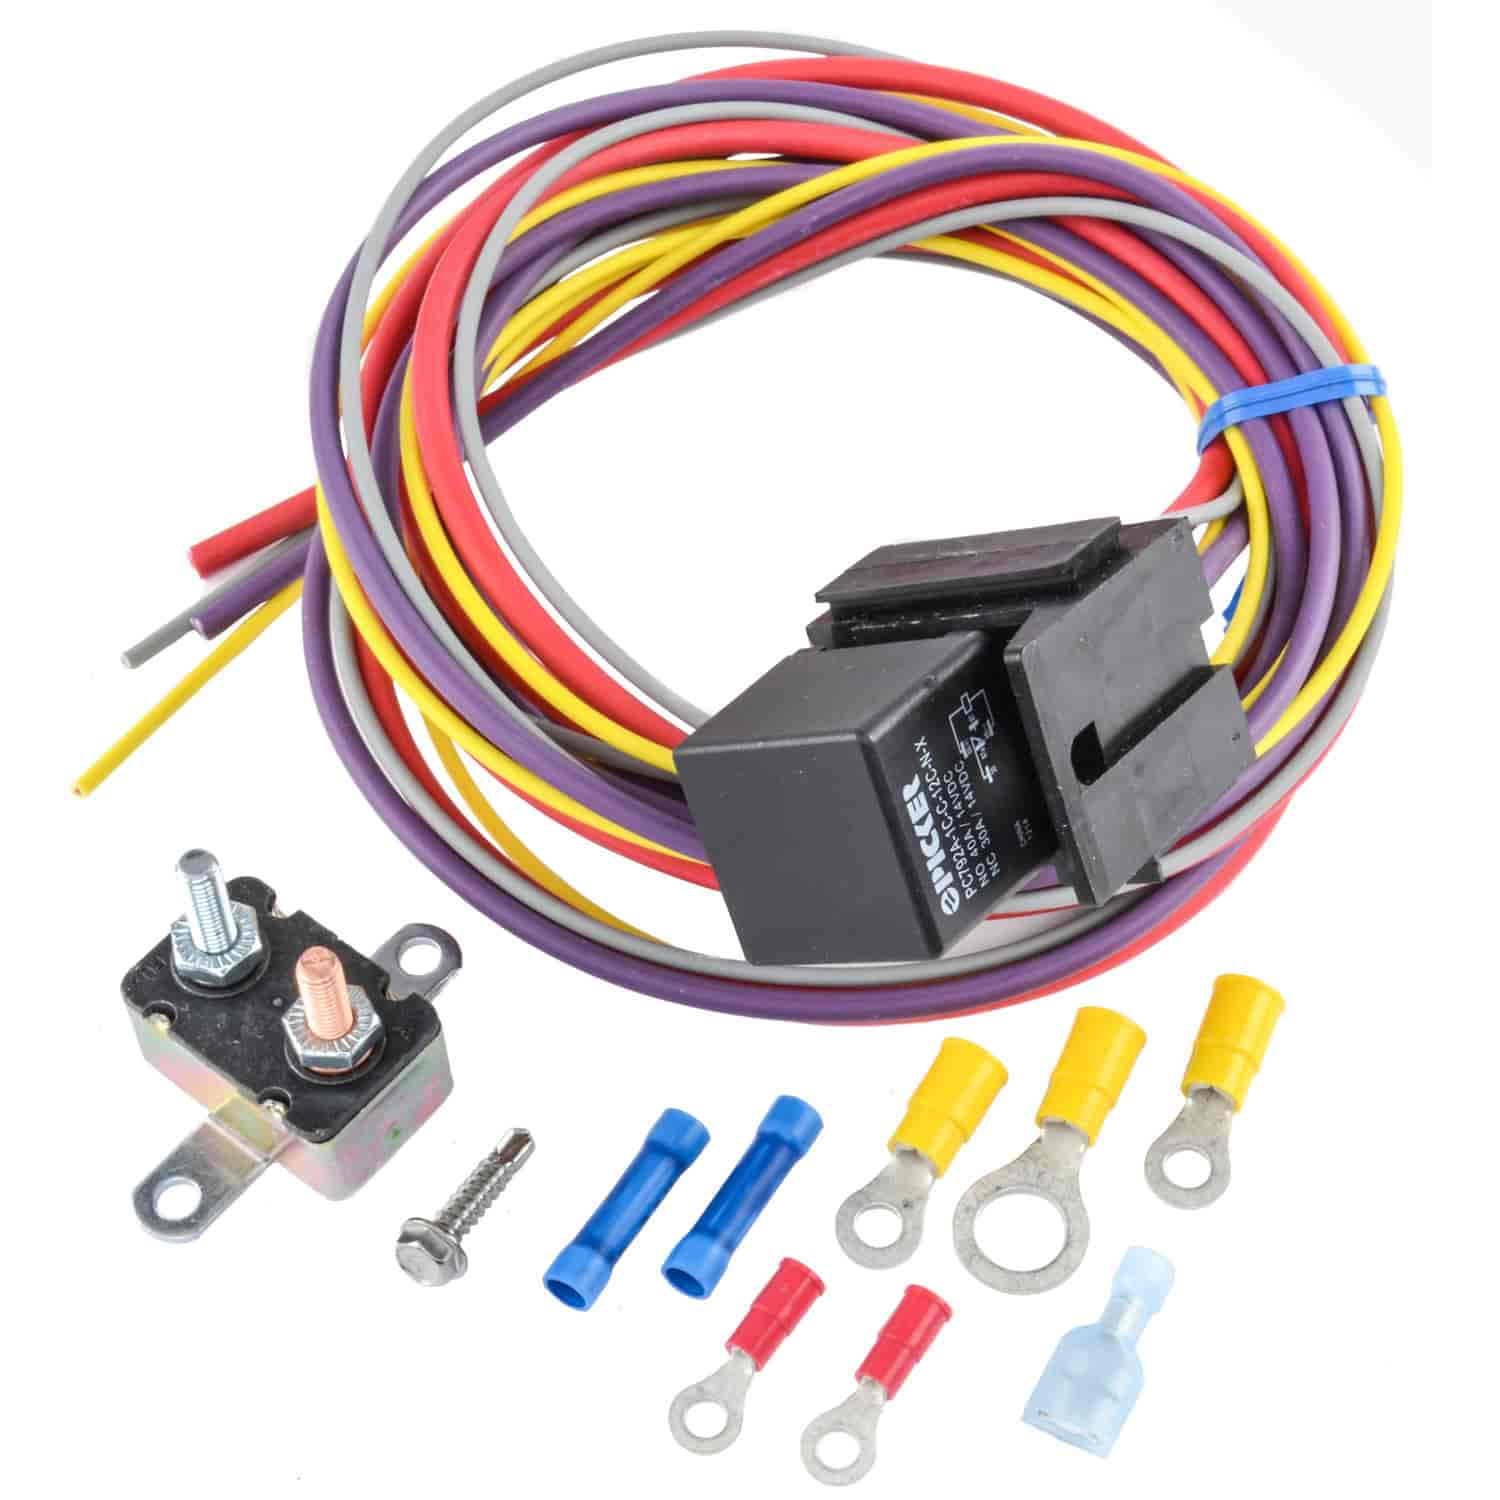 555 10559 jegs performance products 10559 manual controlled single fan jegs universal wiring harness at nearapp.co